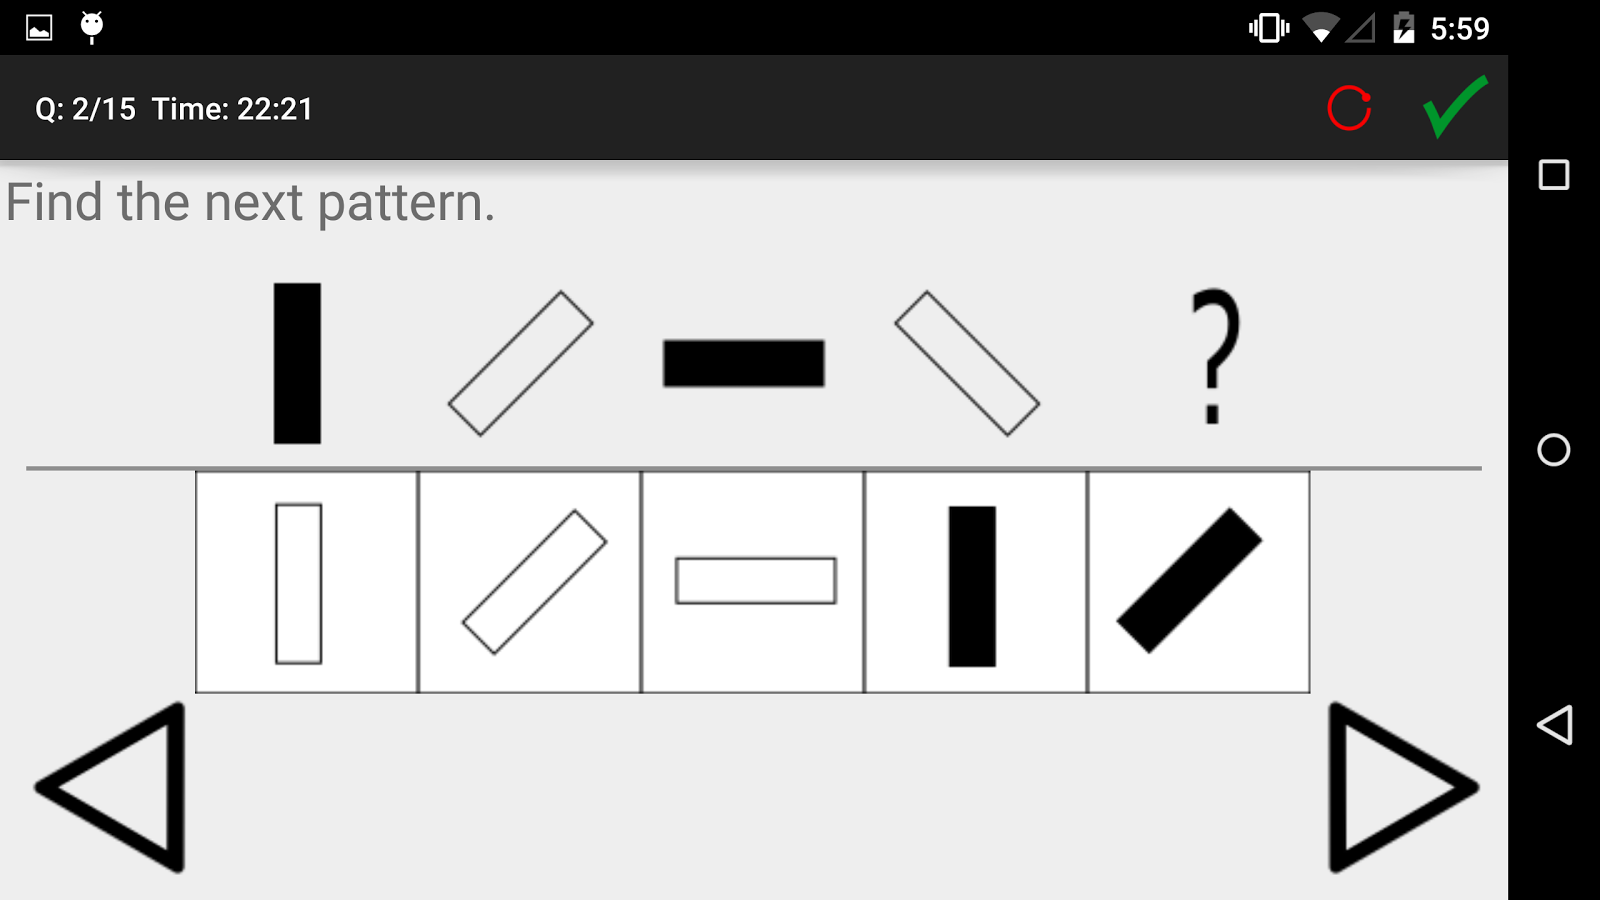 iq and aptitude test practice android apps on google play iq and aptitude test practice screenshot